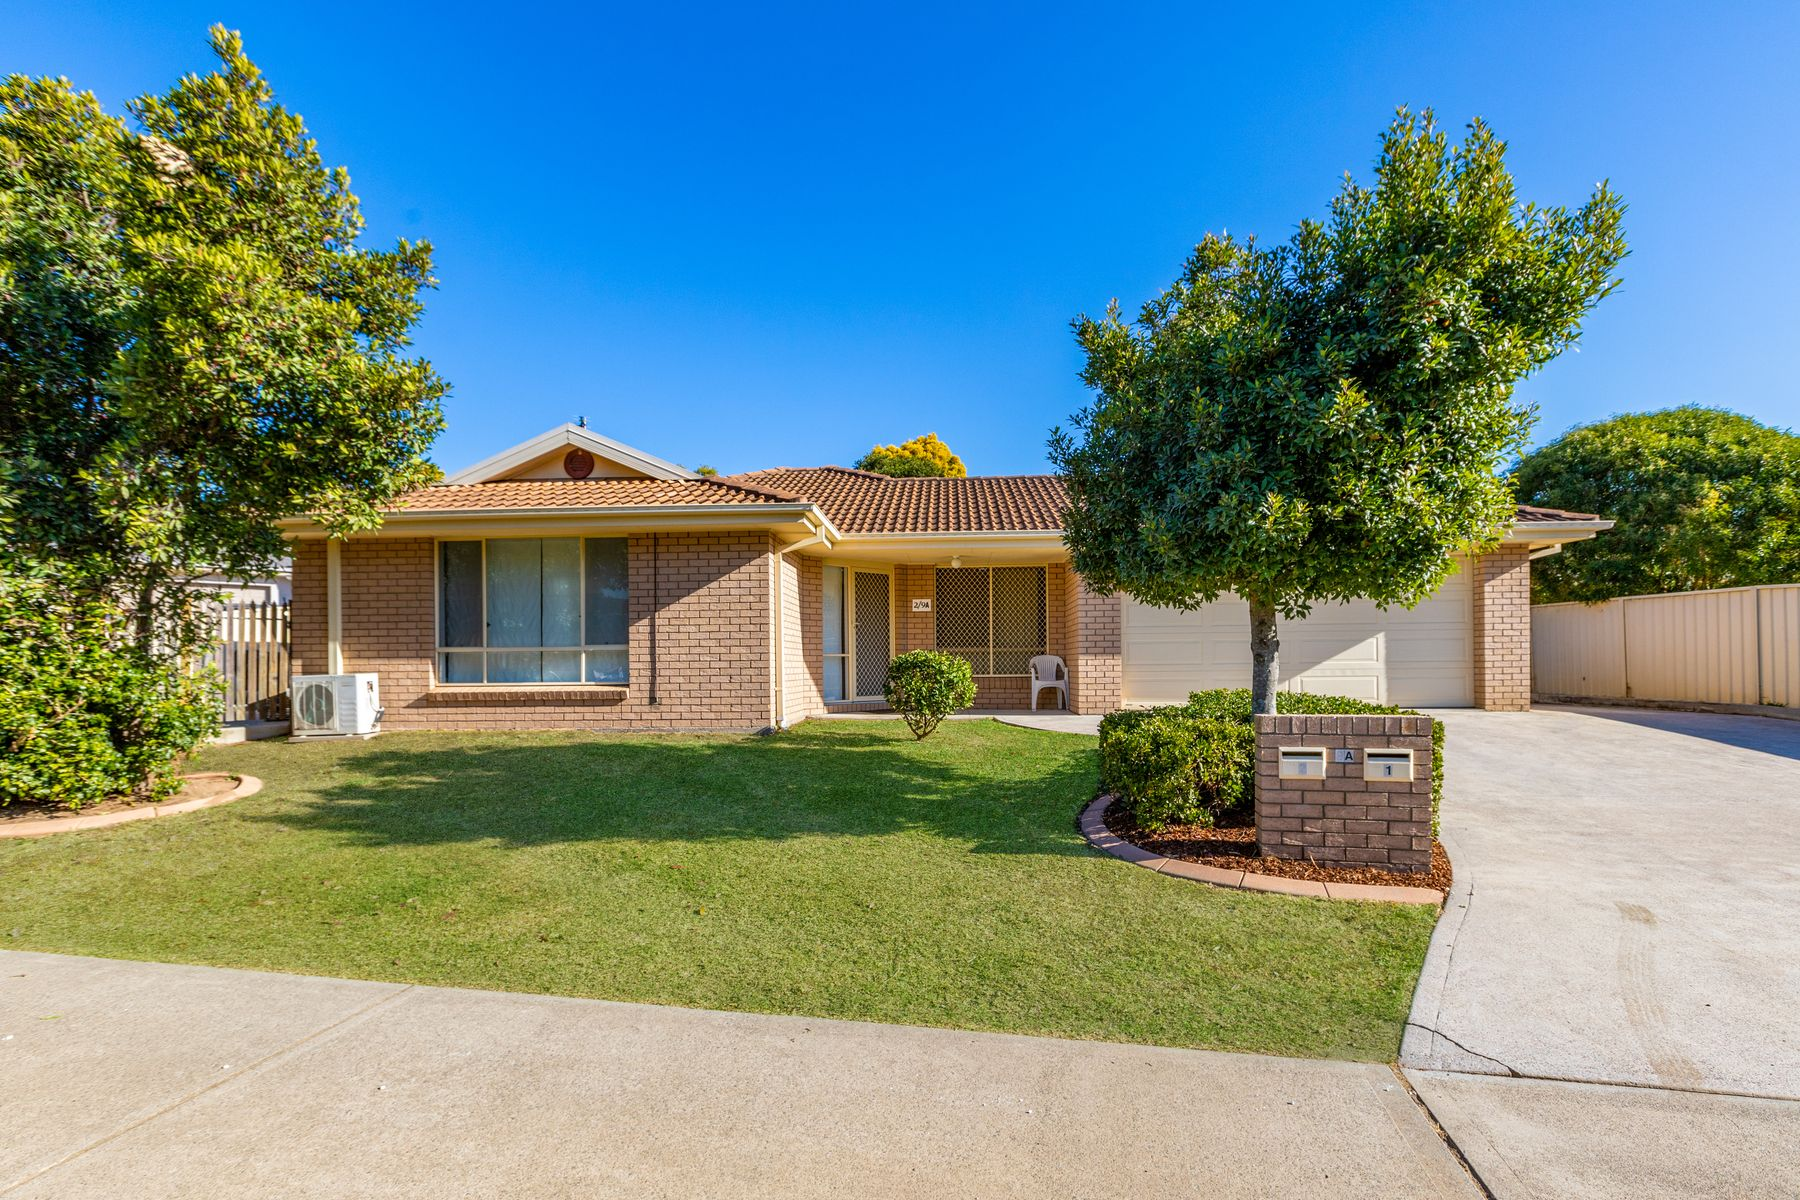 2/9A Walter Street, Rutherford, NSW 2320